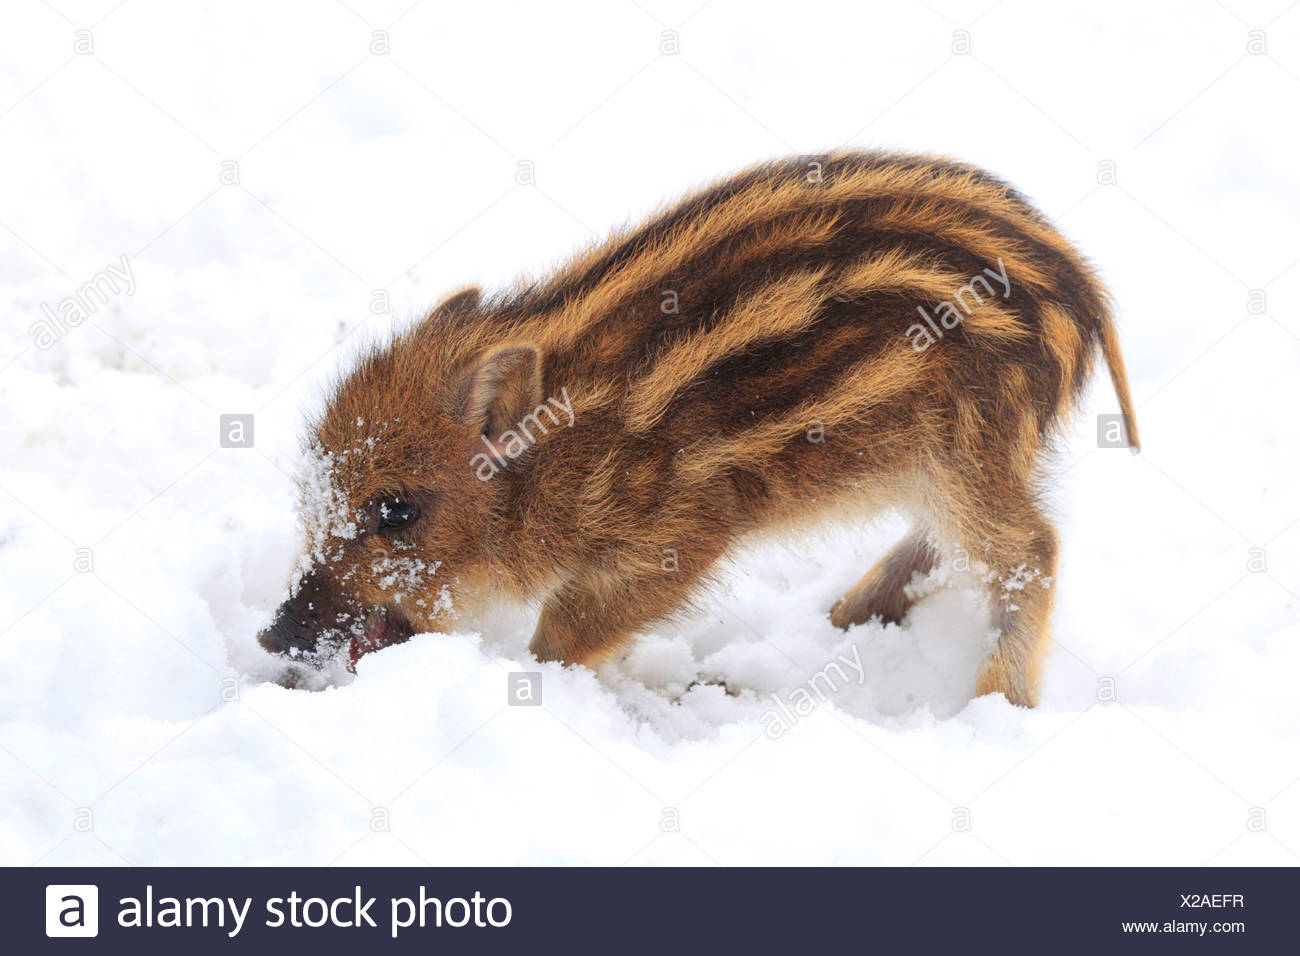 Sus Scrofa Cut Out Stock Images & Pictures - Alamy